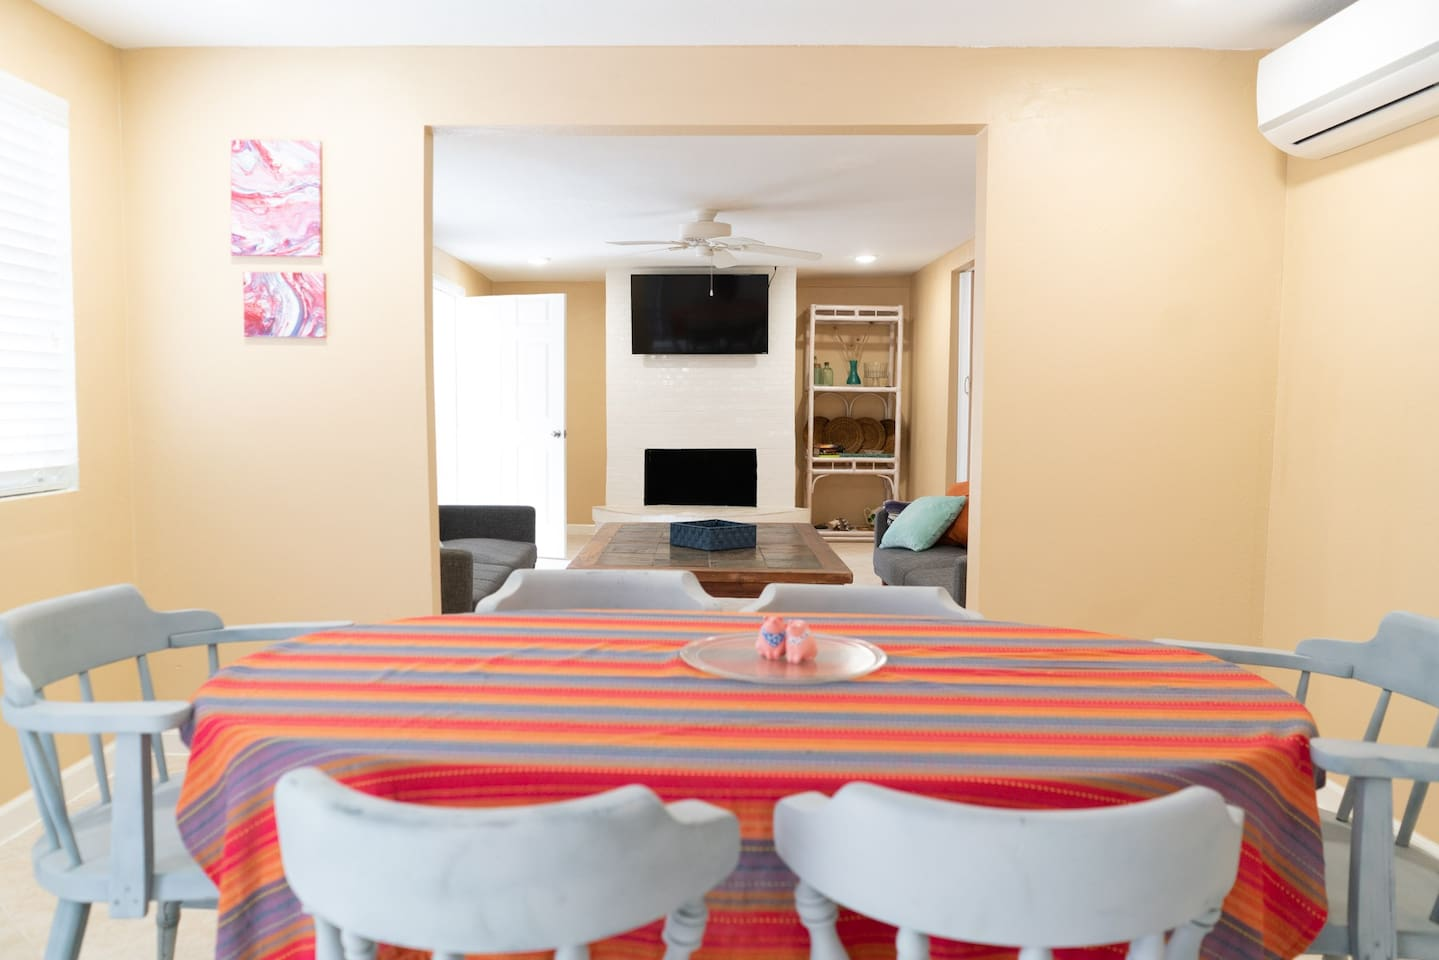 Dining area to living room - we update table cloths out - you may have a different color than shown